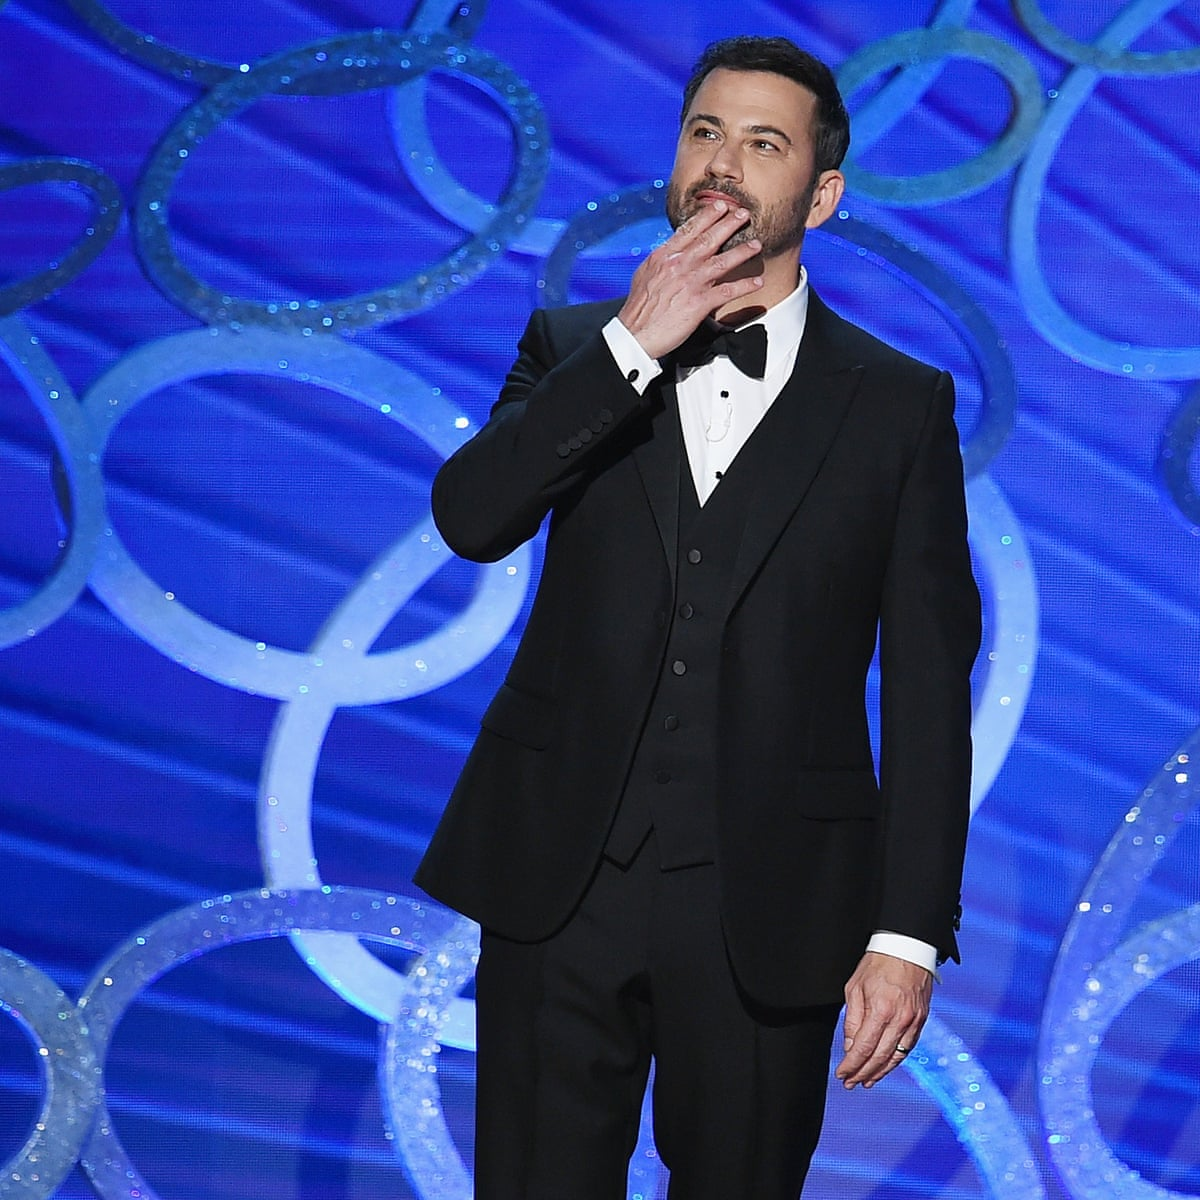 Jimmy Kimmel To Host 2017 Academy Awards Oscars 2017 The Guardian View kevin kimmel's profile on linkedin, the world's largest professional community. host 2017 academy awards oscars 2017